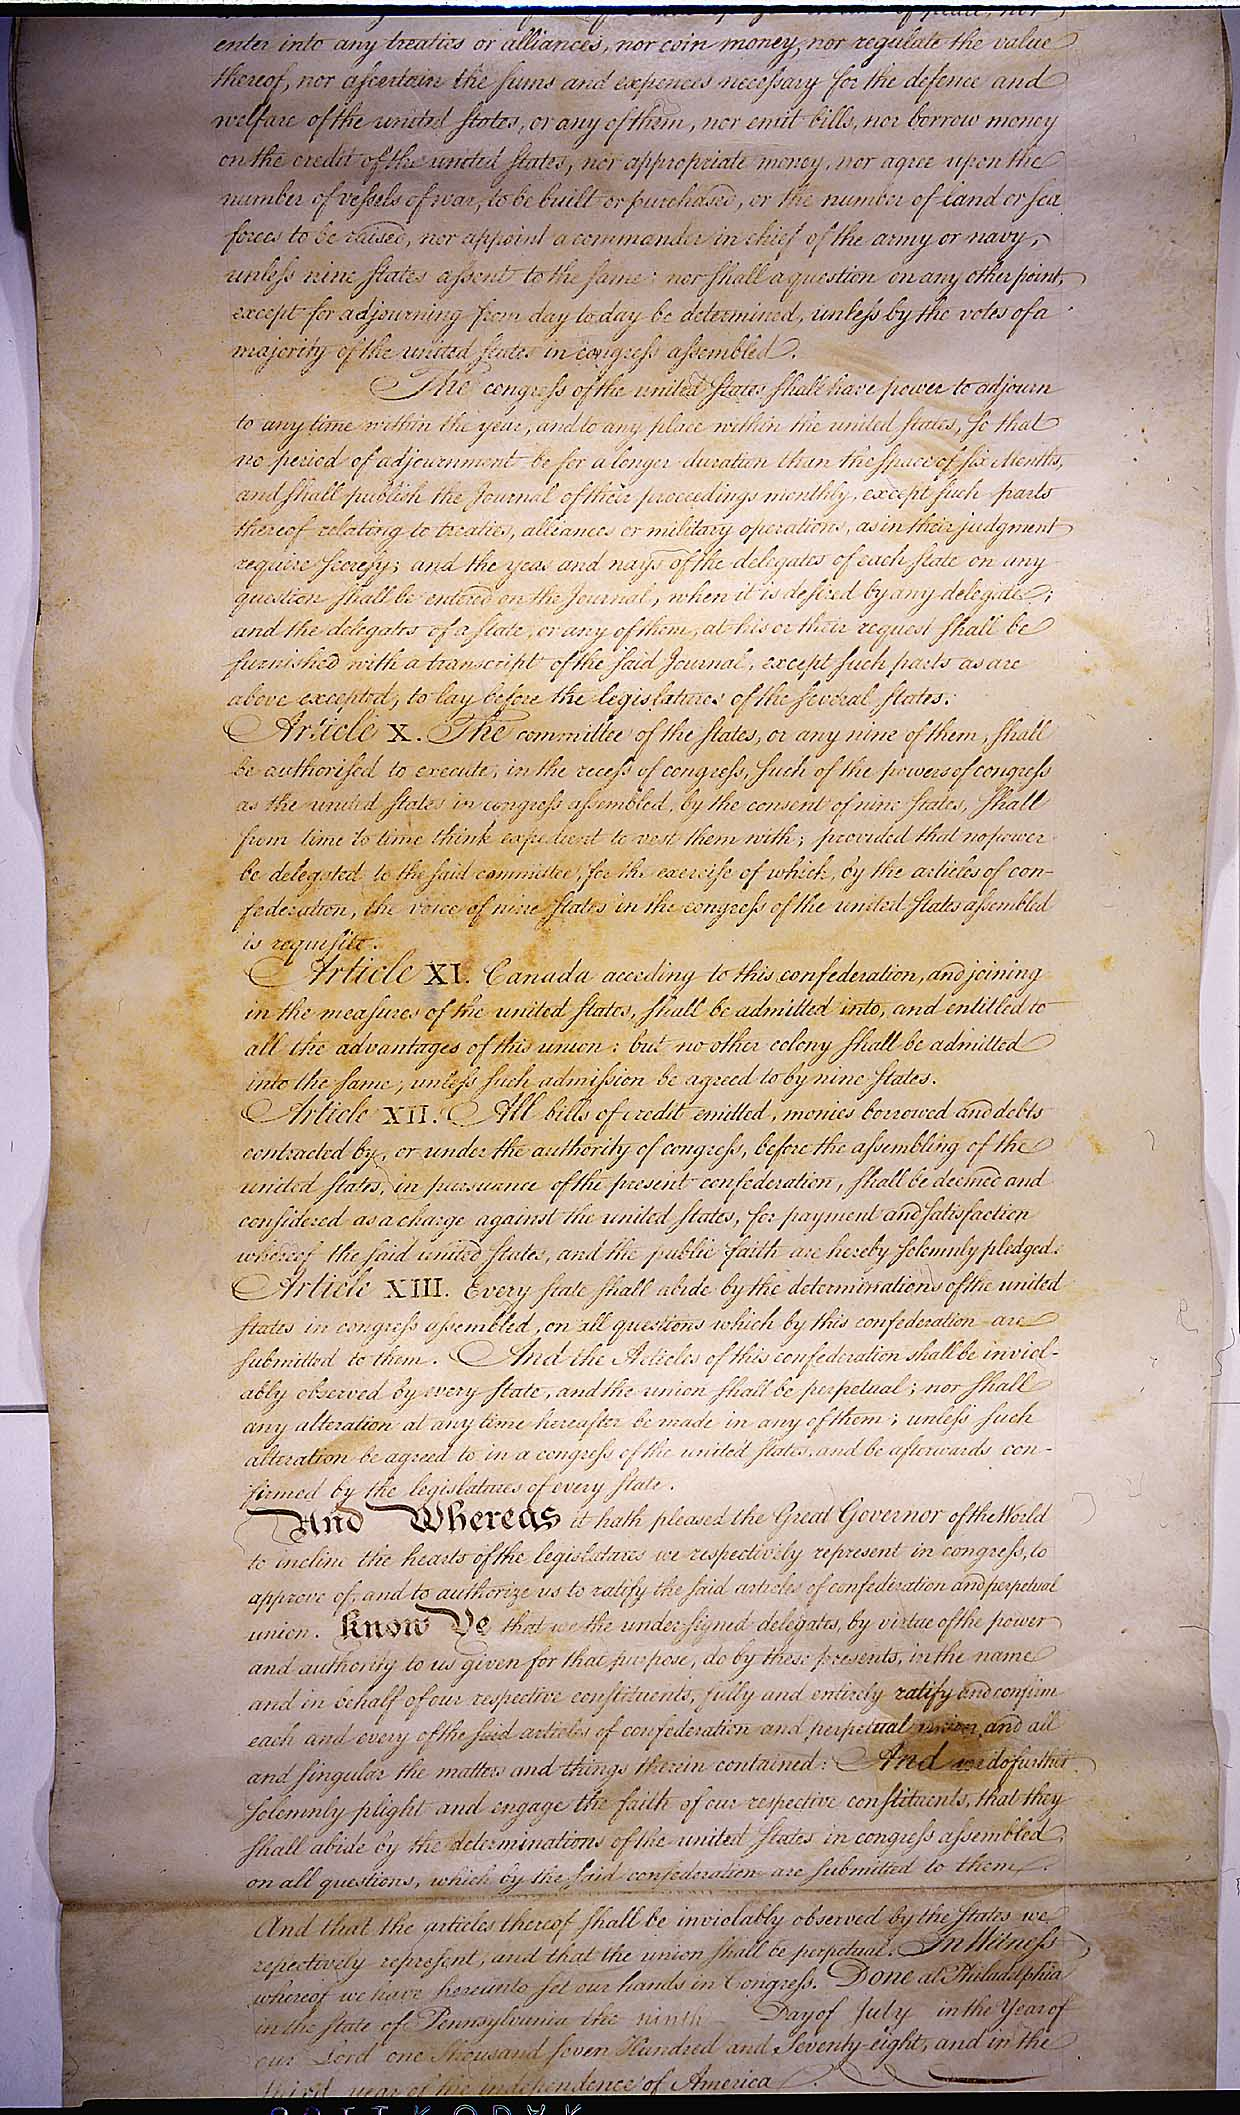 The Articles of the Confederation